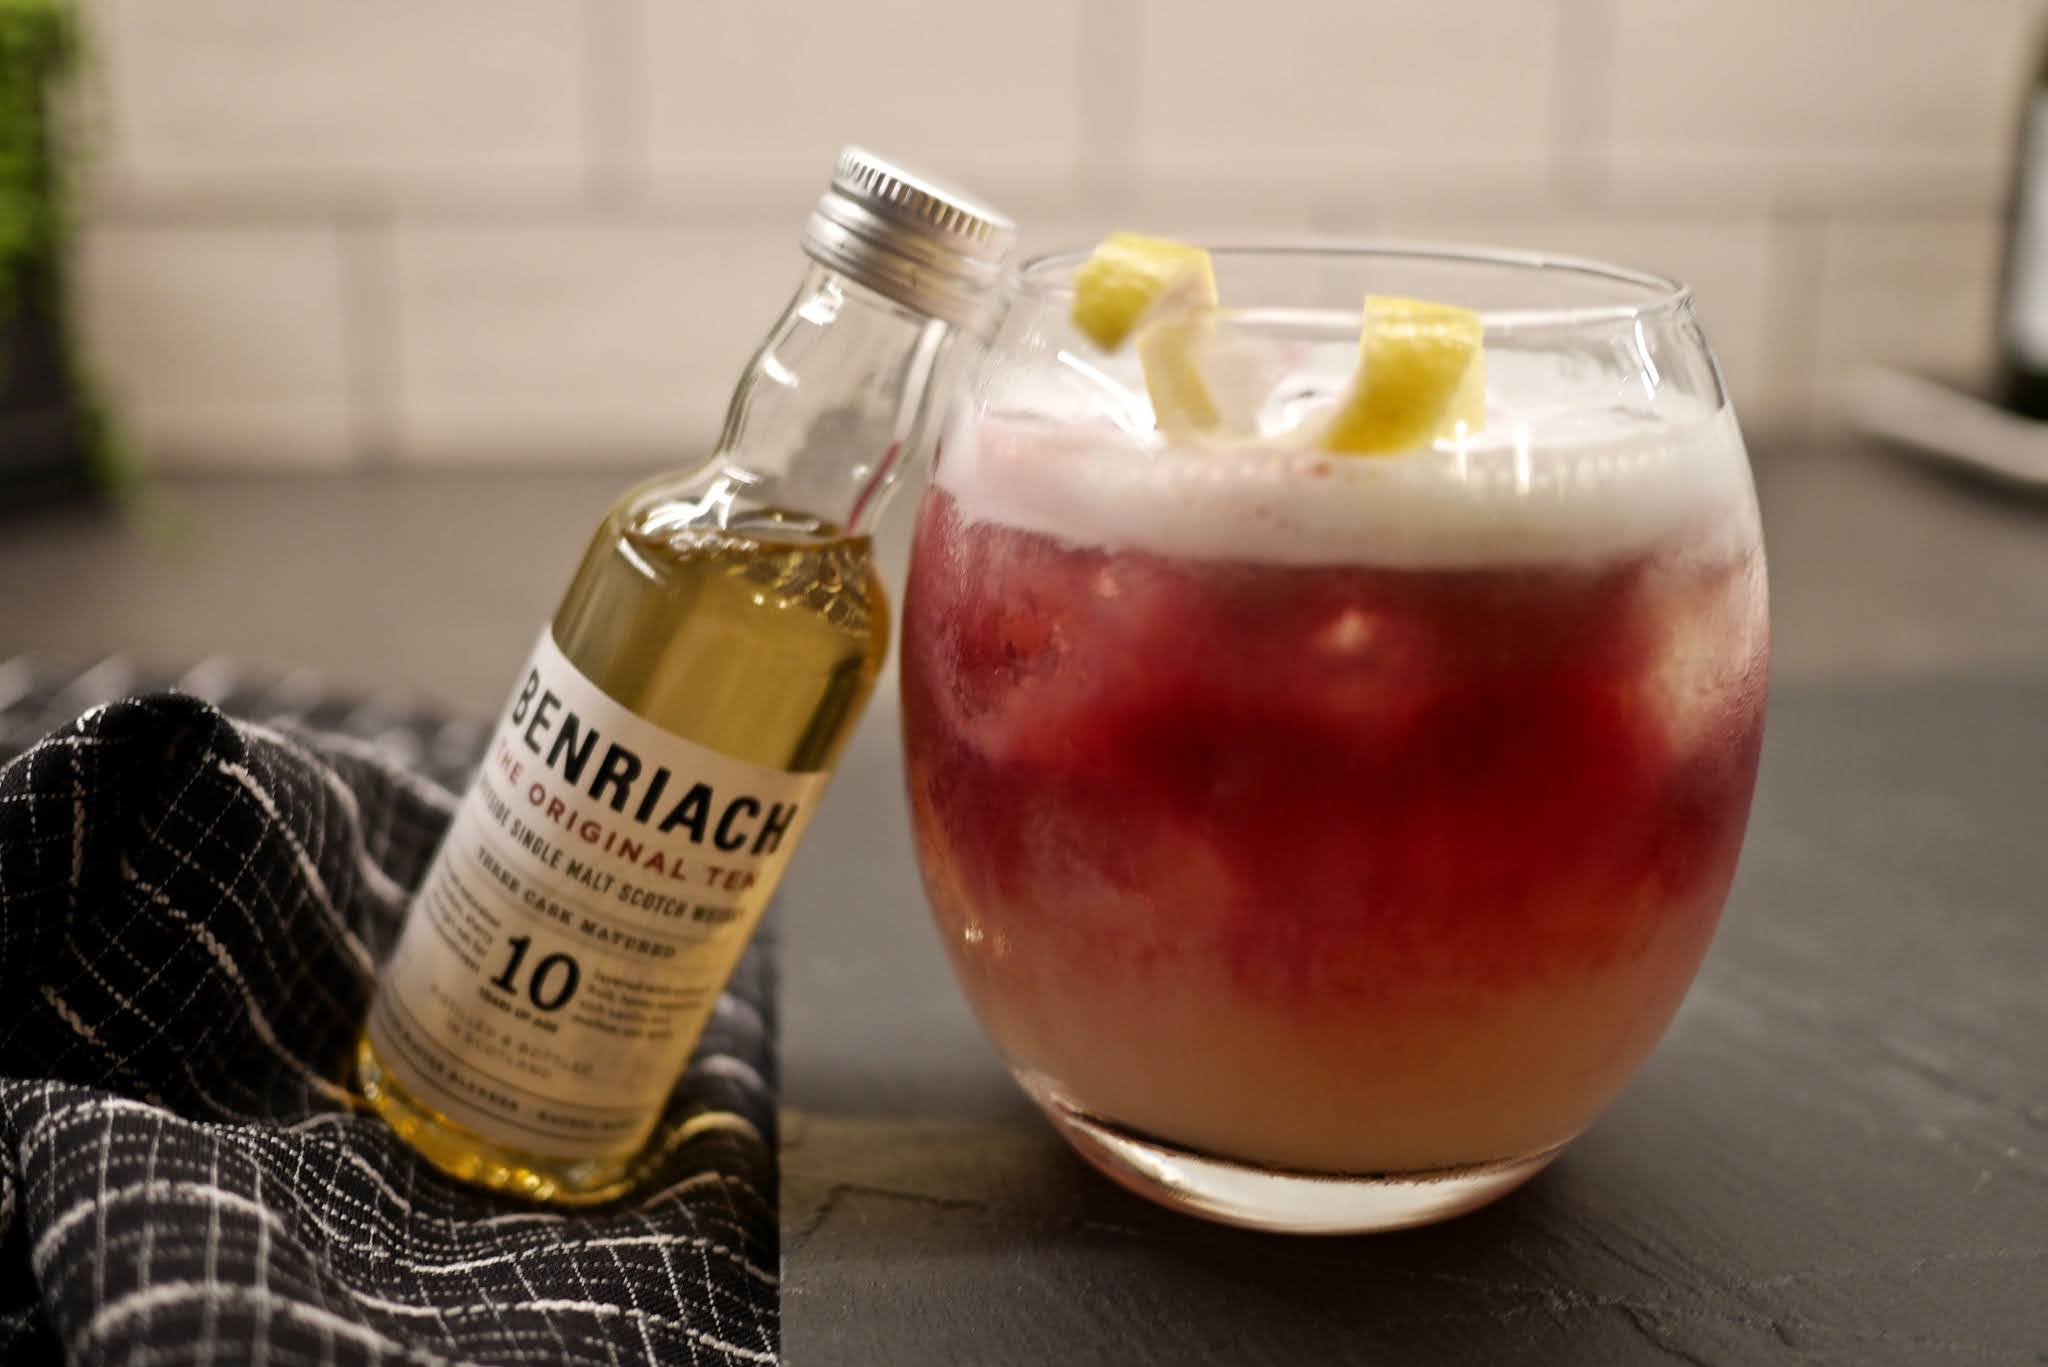 benRiach whisky sour cocktails, by calmctravels